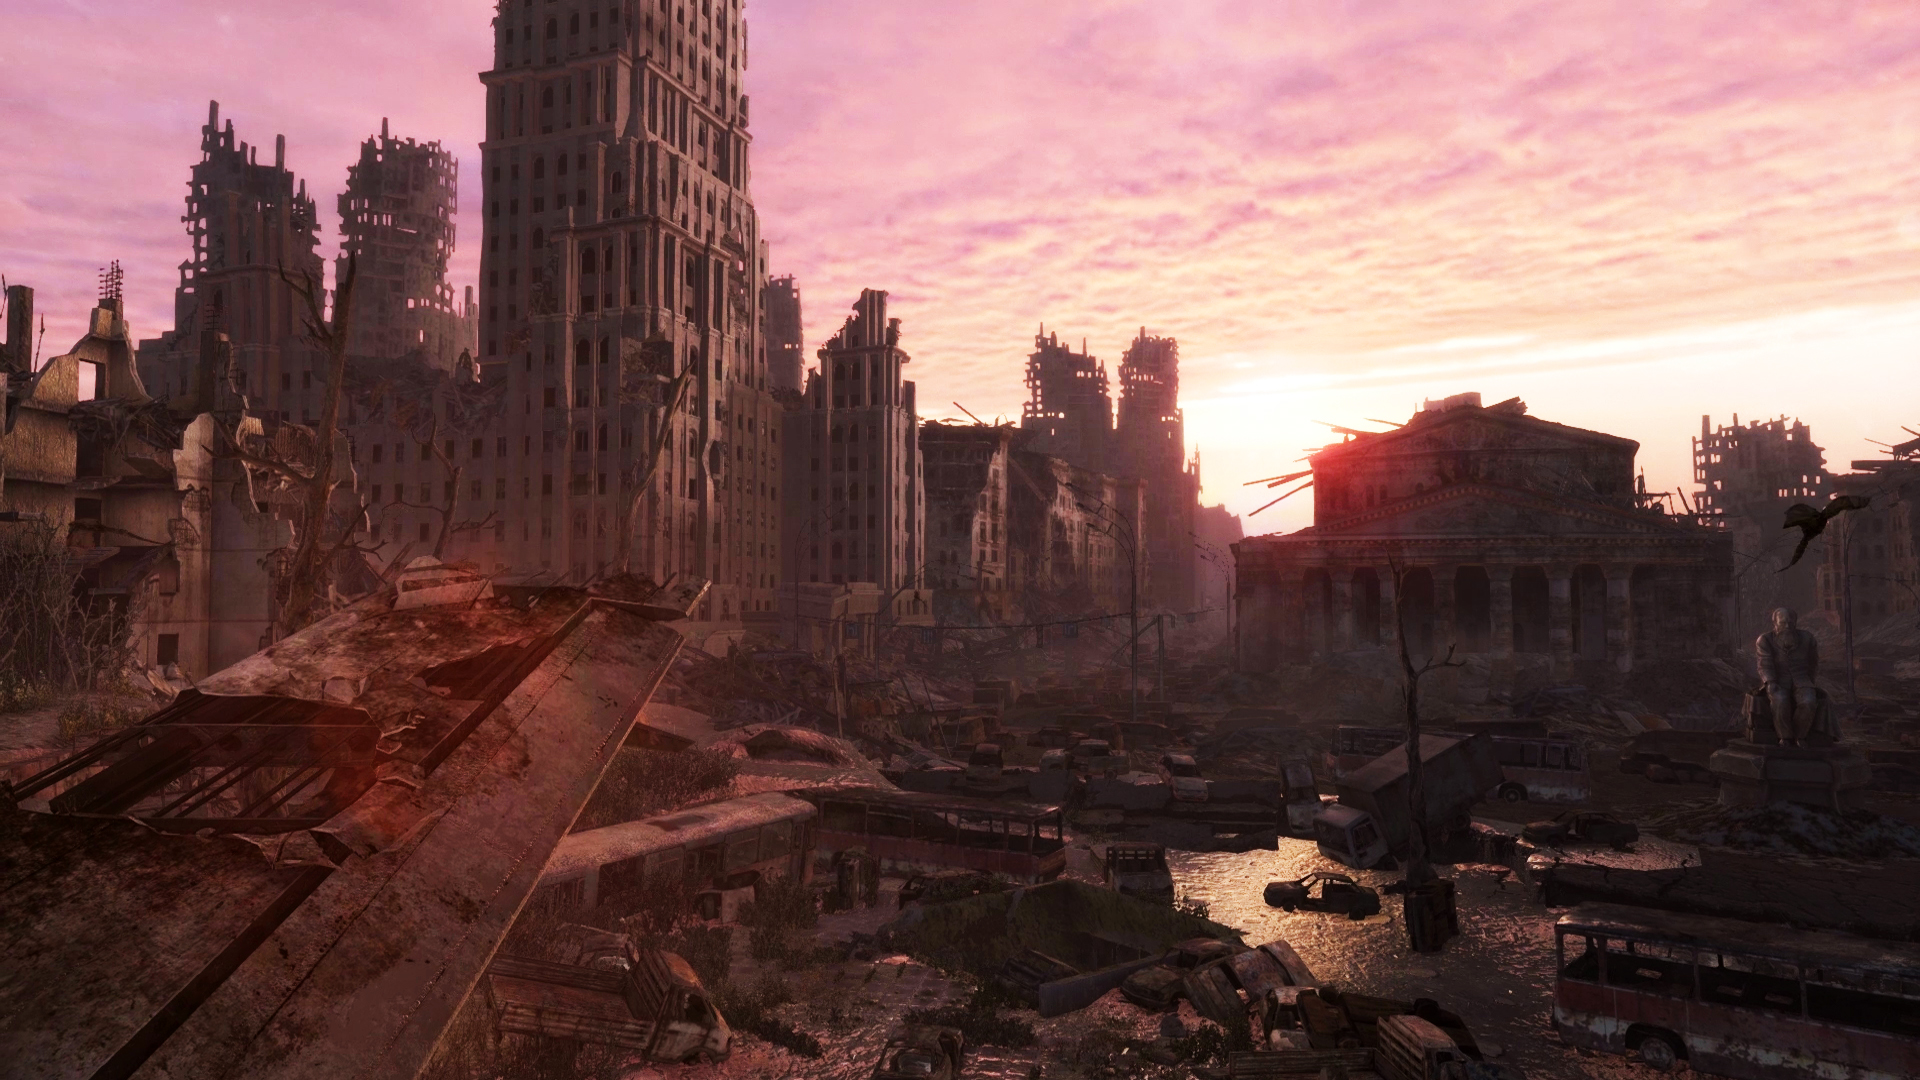 Apocalyptic city shot at sunset